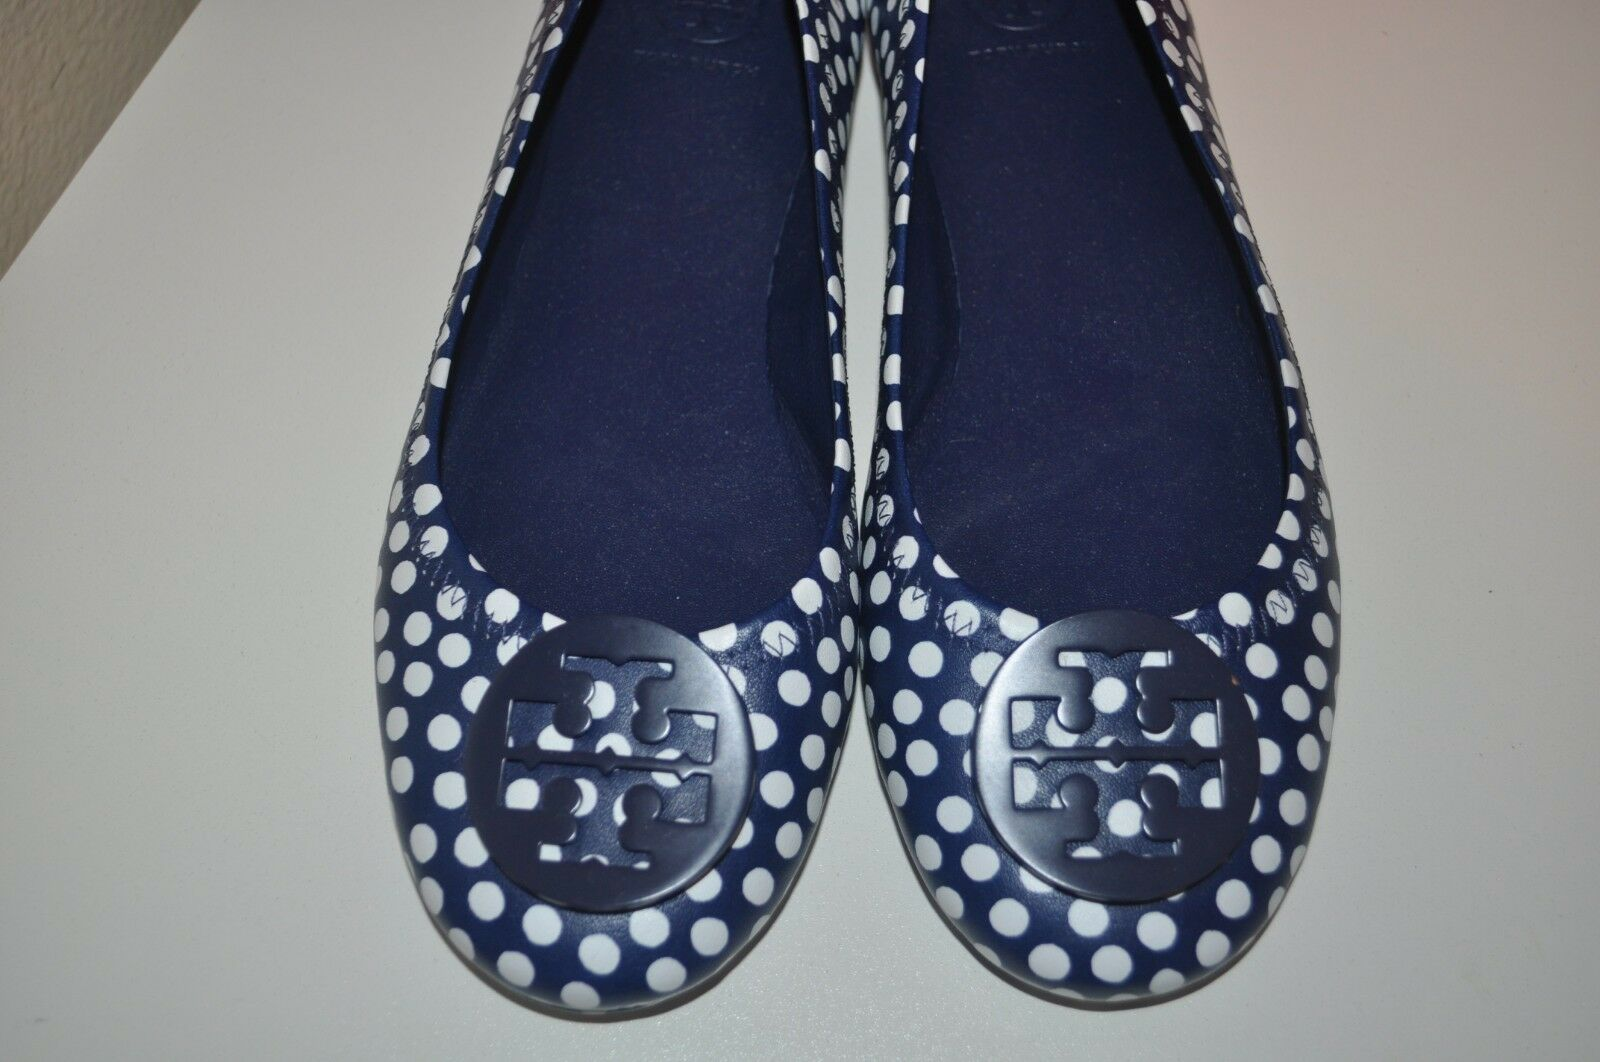 NEW NEW NEW TORY BURCH MINNIE TRAVEL NAVY SEA LEATHER POLKA DOTS BALLET FLATS 9.5 M 1ca8a5